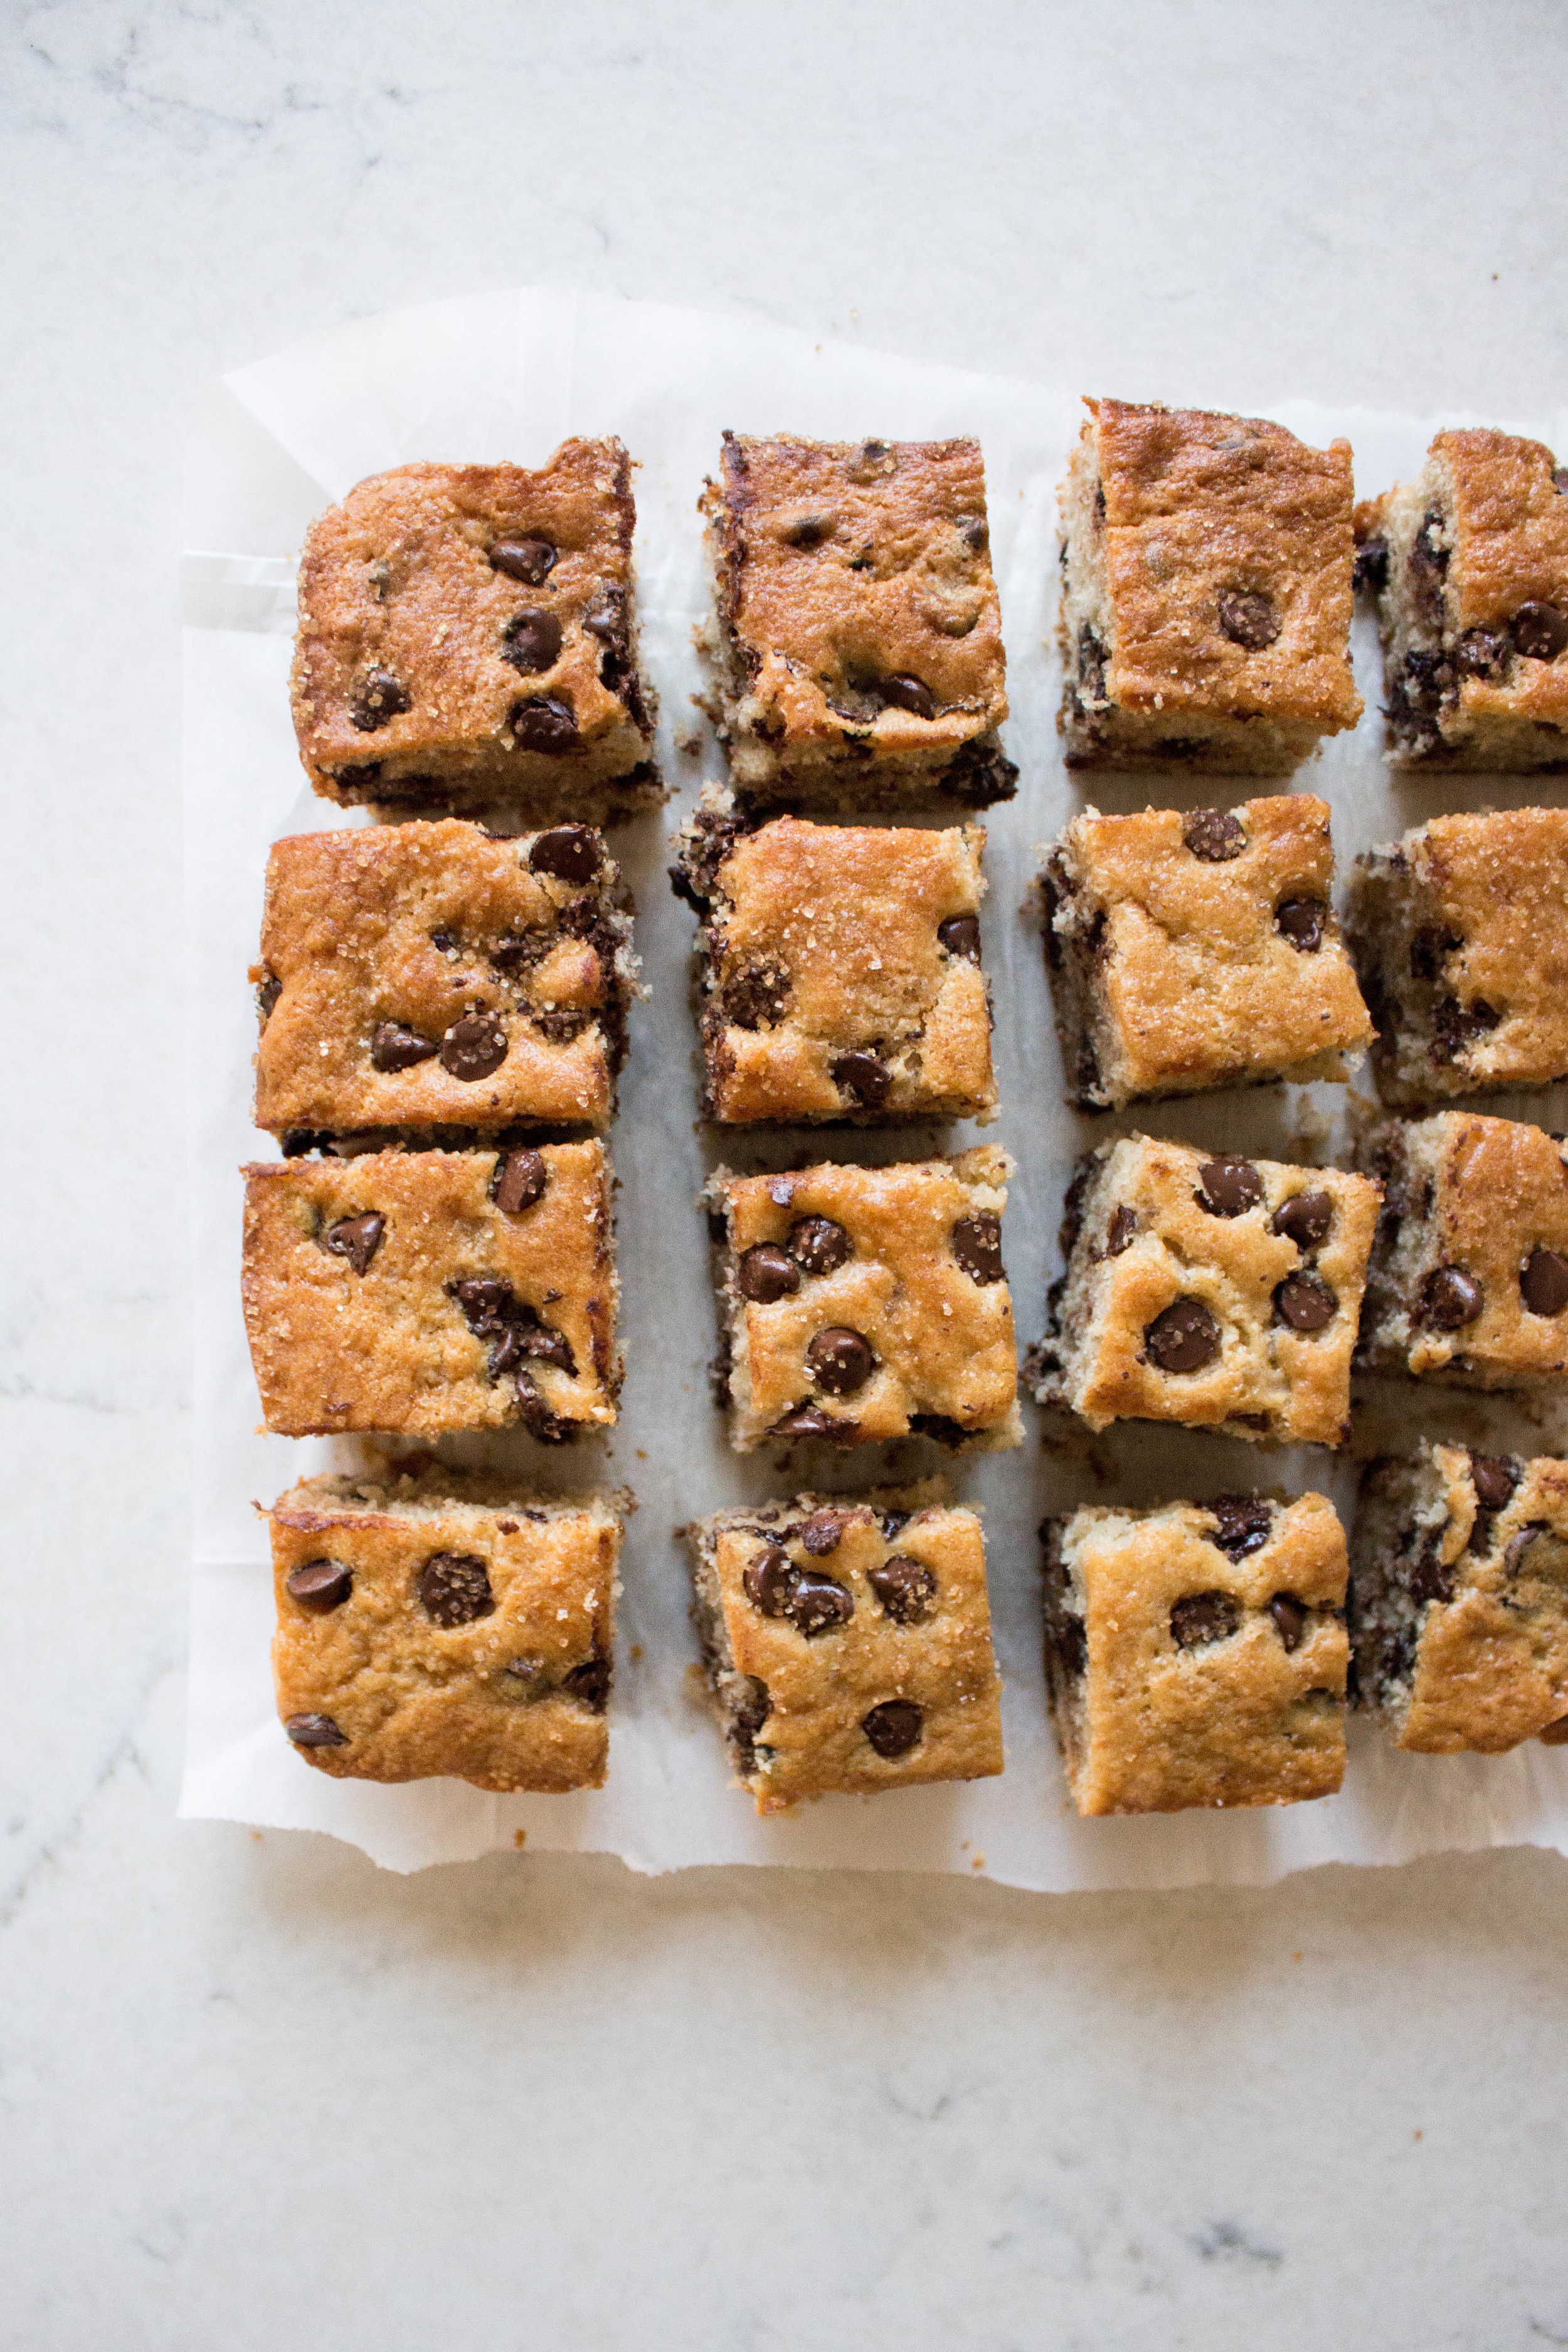 chocolate chip snack cake - makes one 8x8-inch panadapted slightly from The Sweet and Simple Kitchen1/2 cup butter, softened1/2 cup granulated sugar1/2 cup brown sugar2 eggs1 1/2 teaspoons vanilla1 1/2 cups all-purpose flour1/2 teaspoon baking soda2 teaspoon baking powder1/2 teaspoon cinnamon1/4 teaspoon salt1 cup sour cream or full-fat greek yogurt1 cup chocolate chipsraw turbinado sugar, for sprinkling (optional)